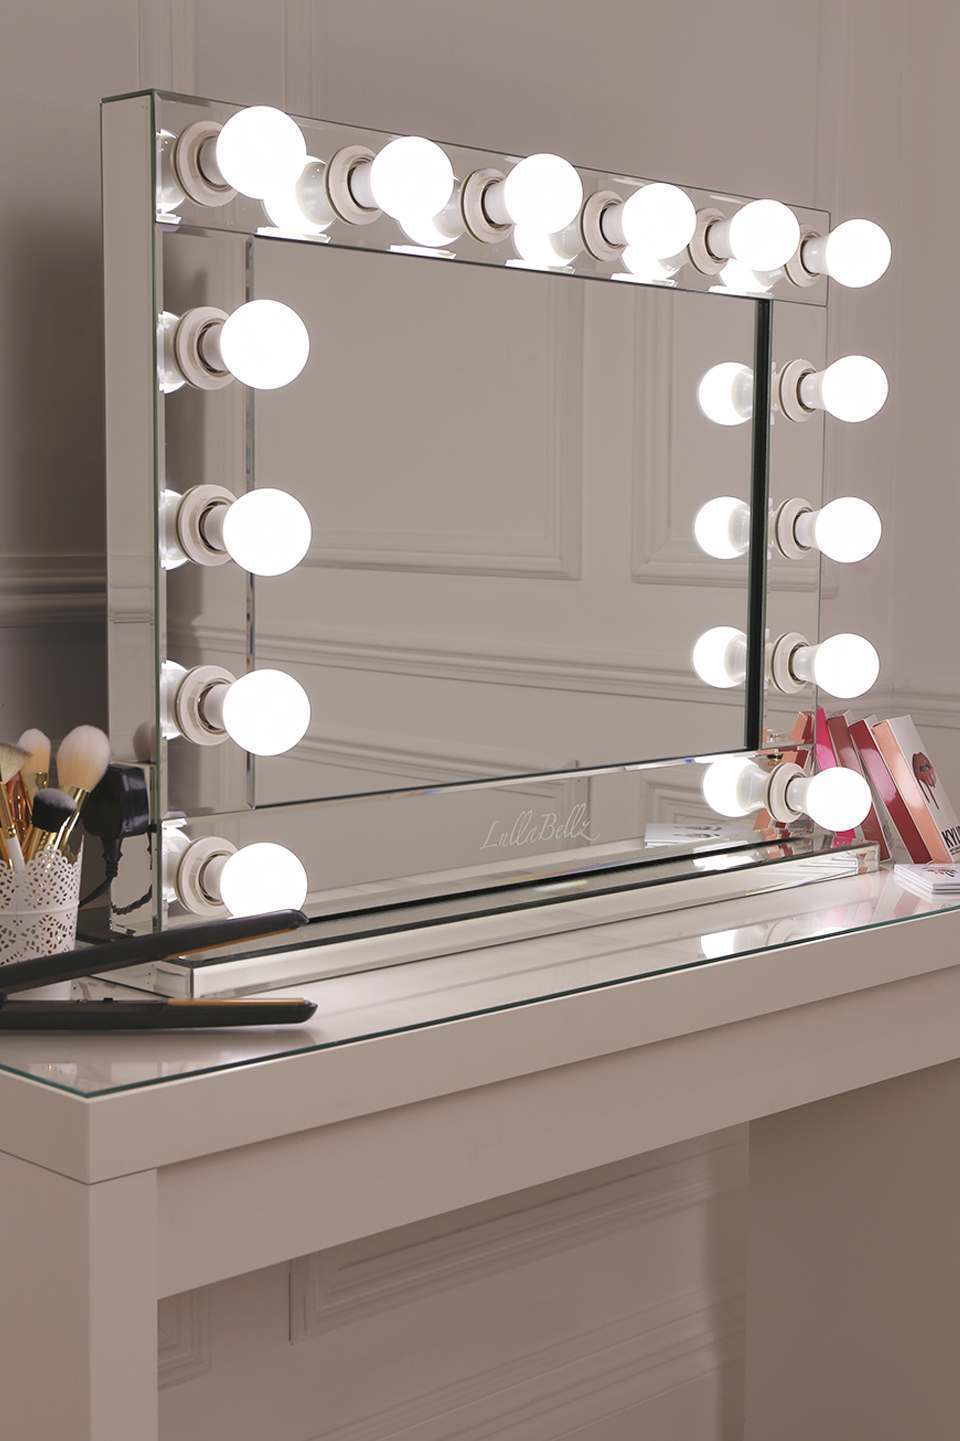 mirror finish glamour make up mirror lullabellz. Black Bedroom Furniture Sets. Home Design Ideas